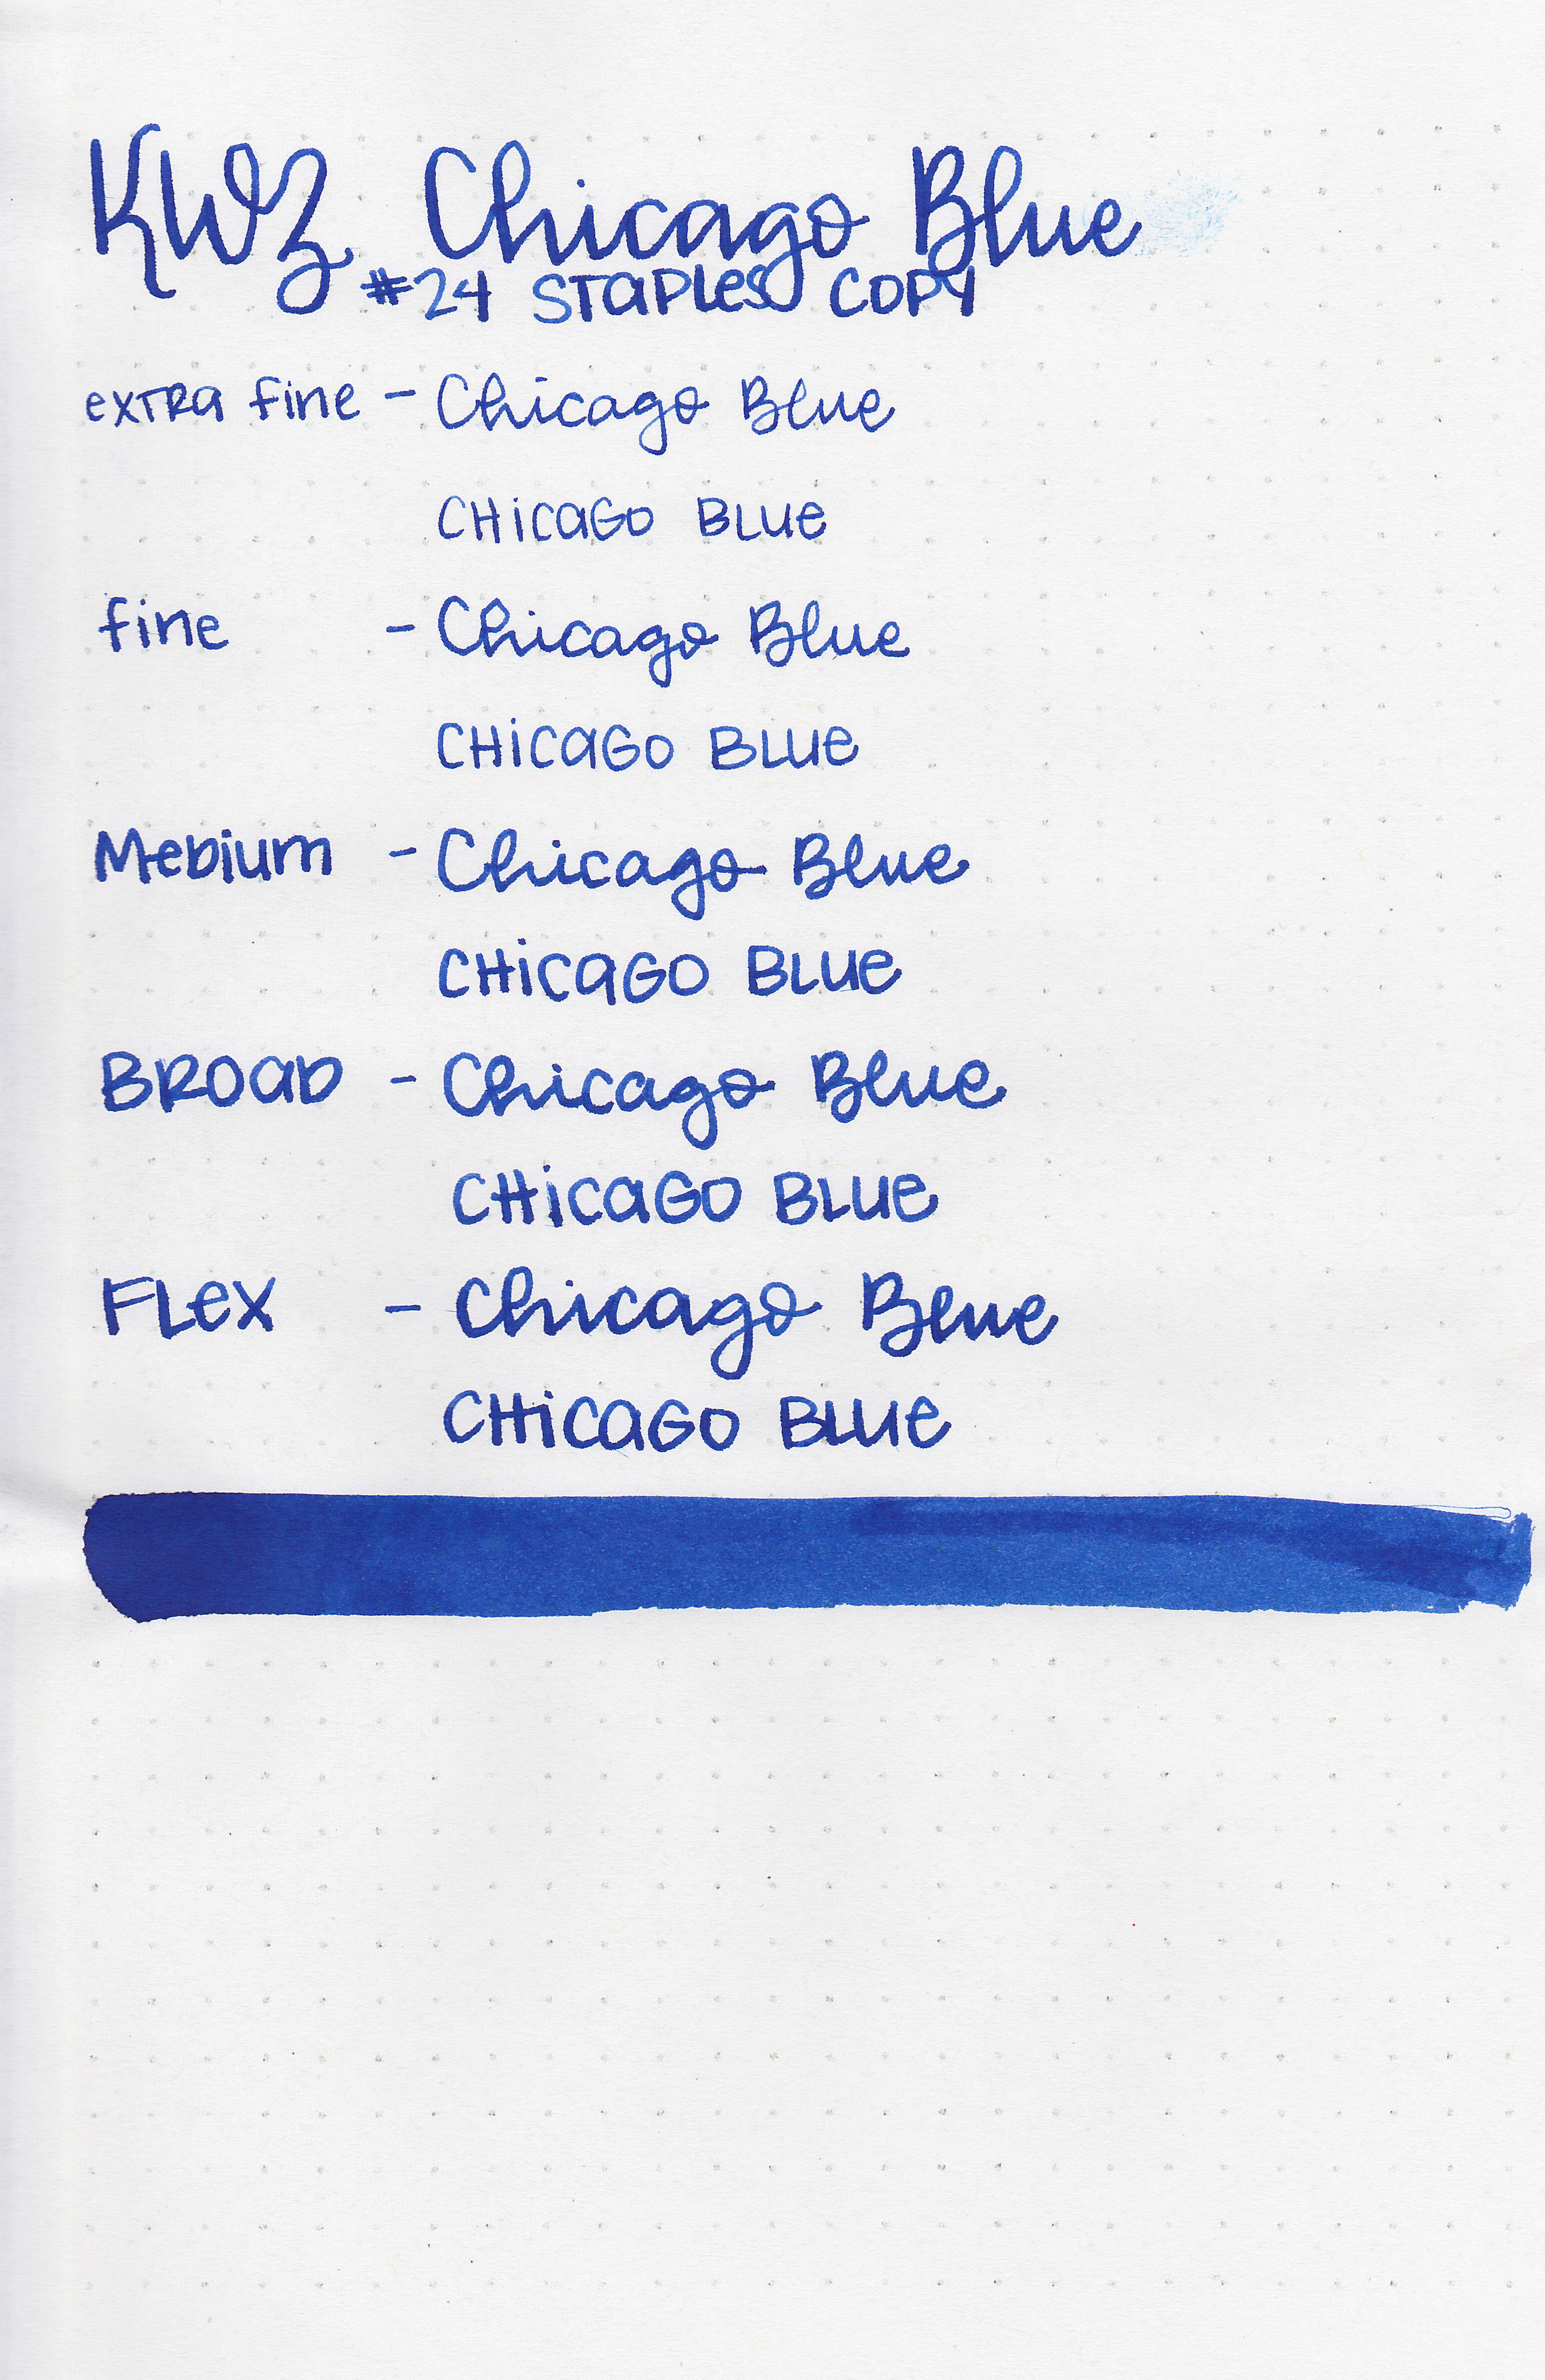 kwz-chicago-blue-11.jpg